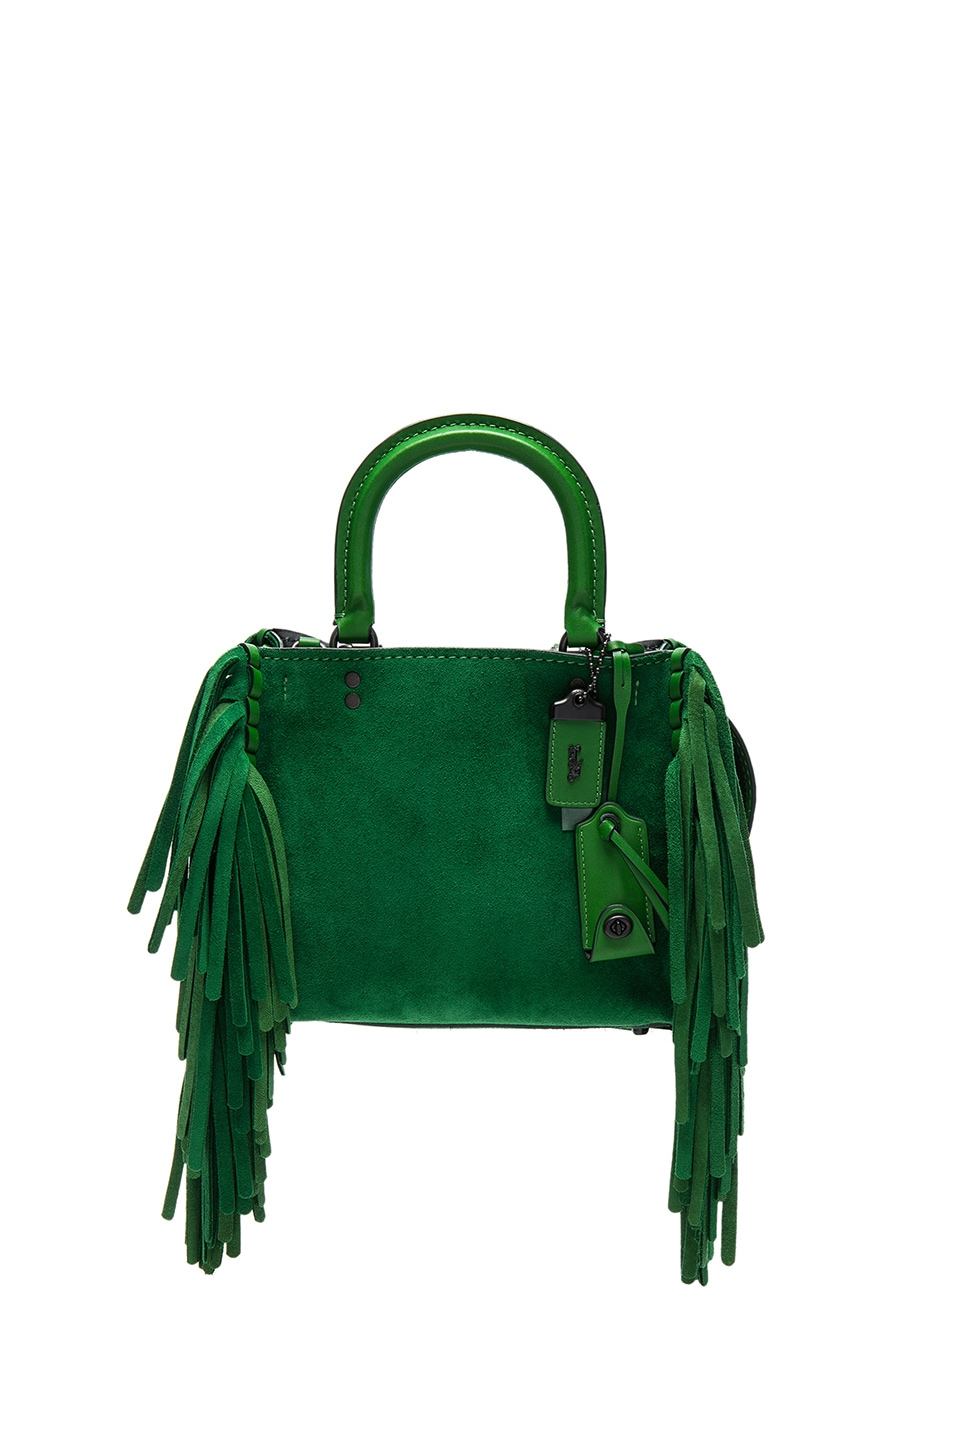 Image 1 Of Coach 1941 Suede Fringe Rogue Bag In Kelly Green